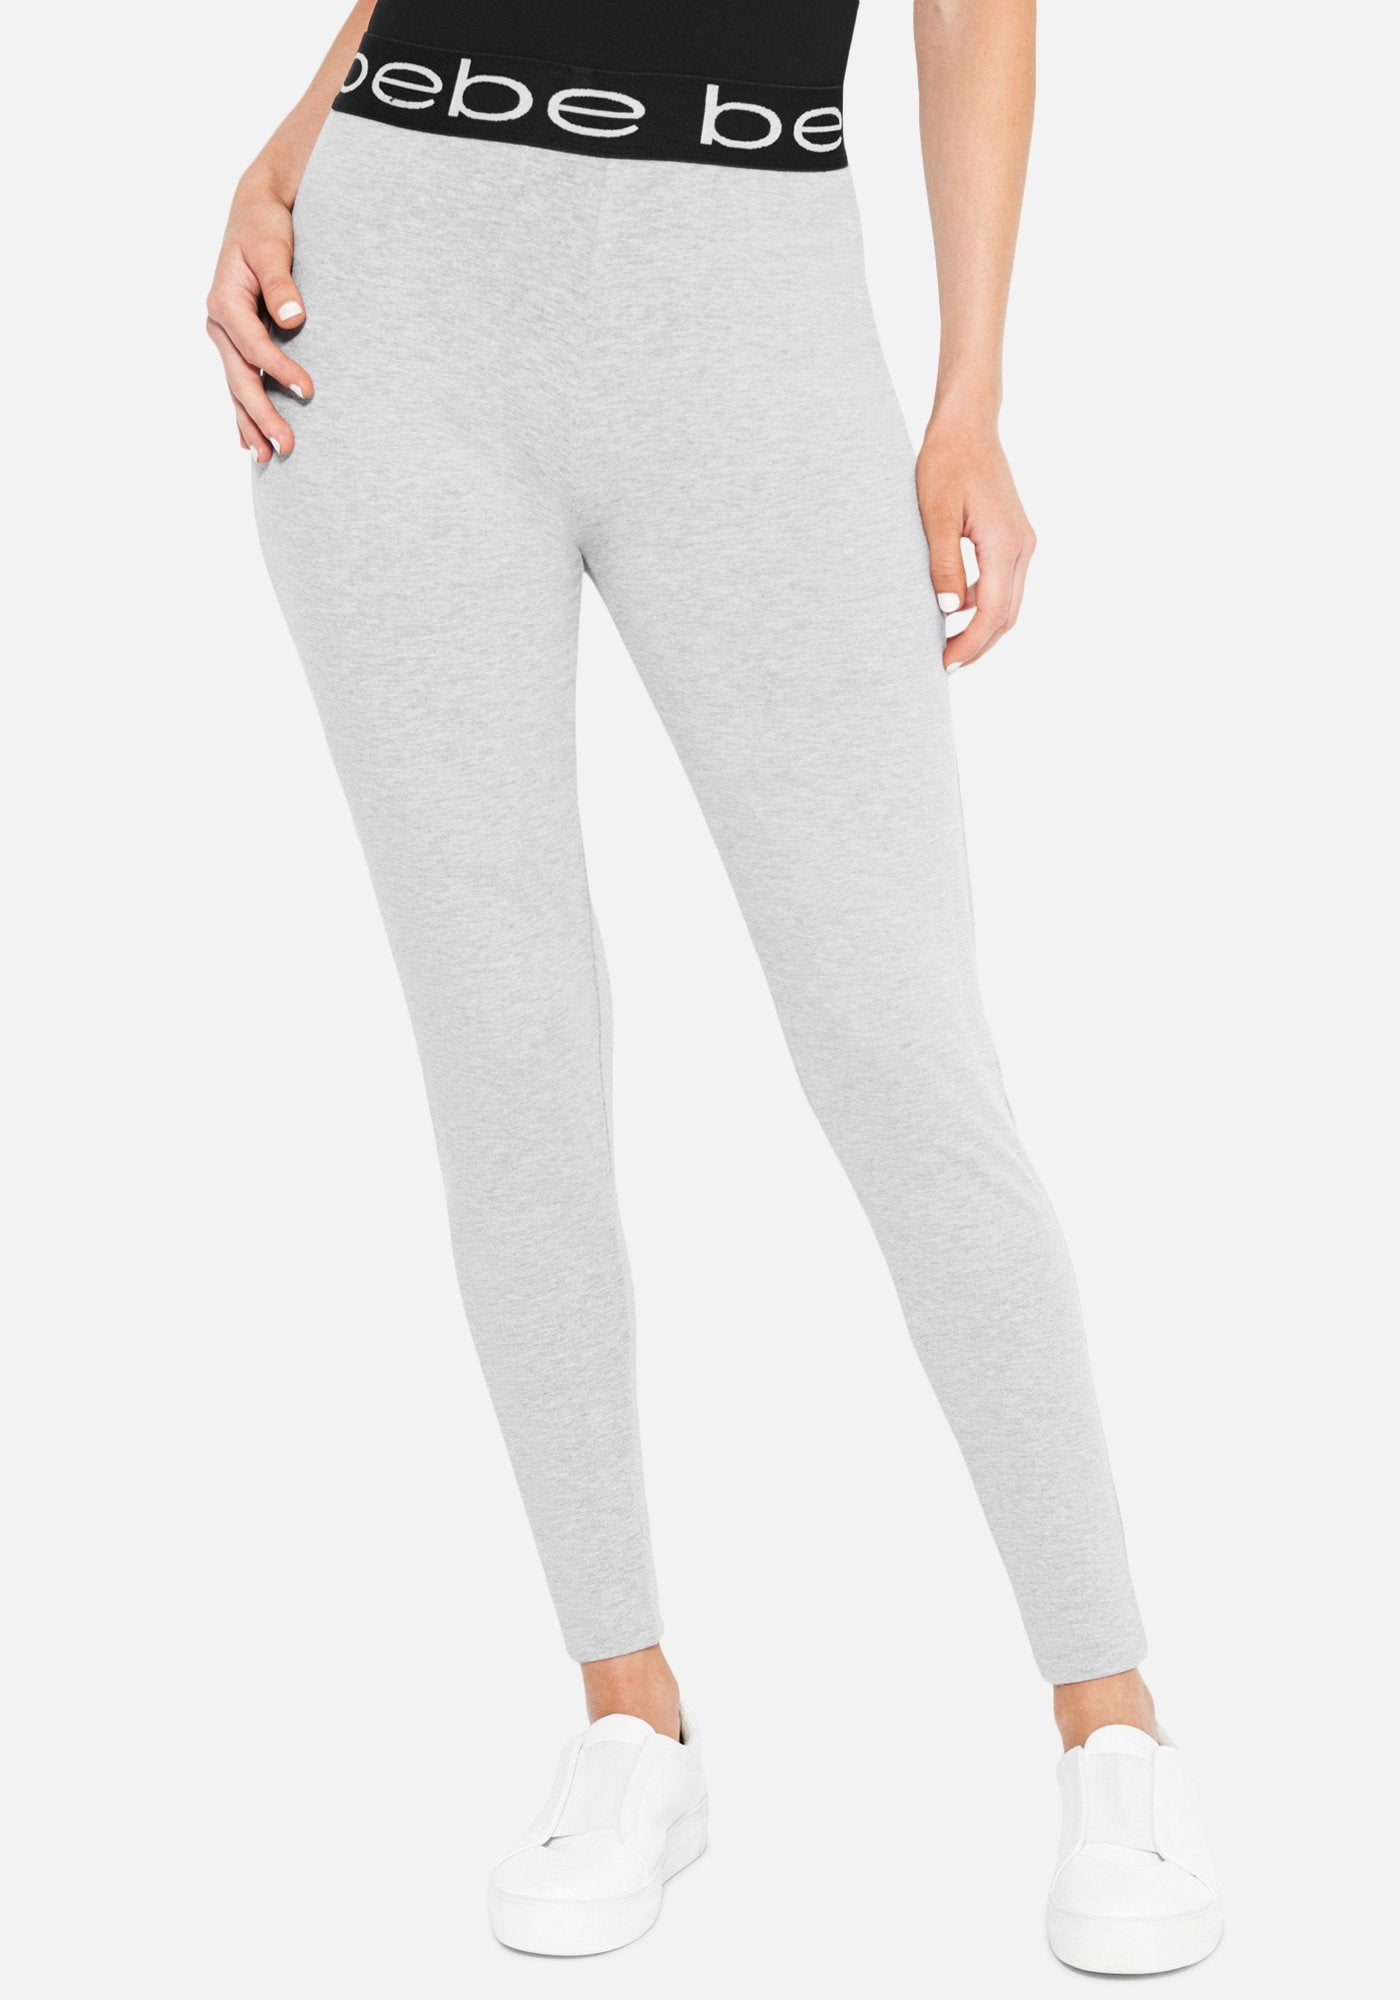 Women's Bebe Logo Lounge Pant, Size Small in Heather Grey Cotton